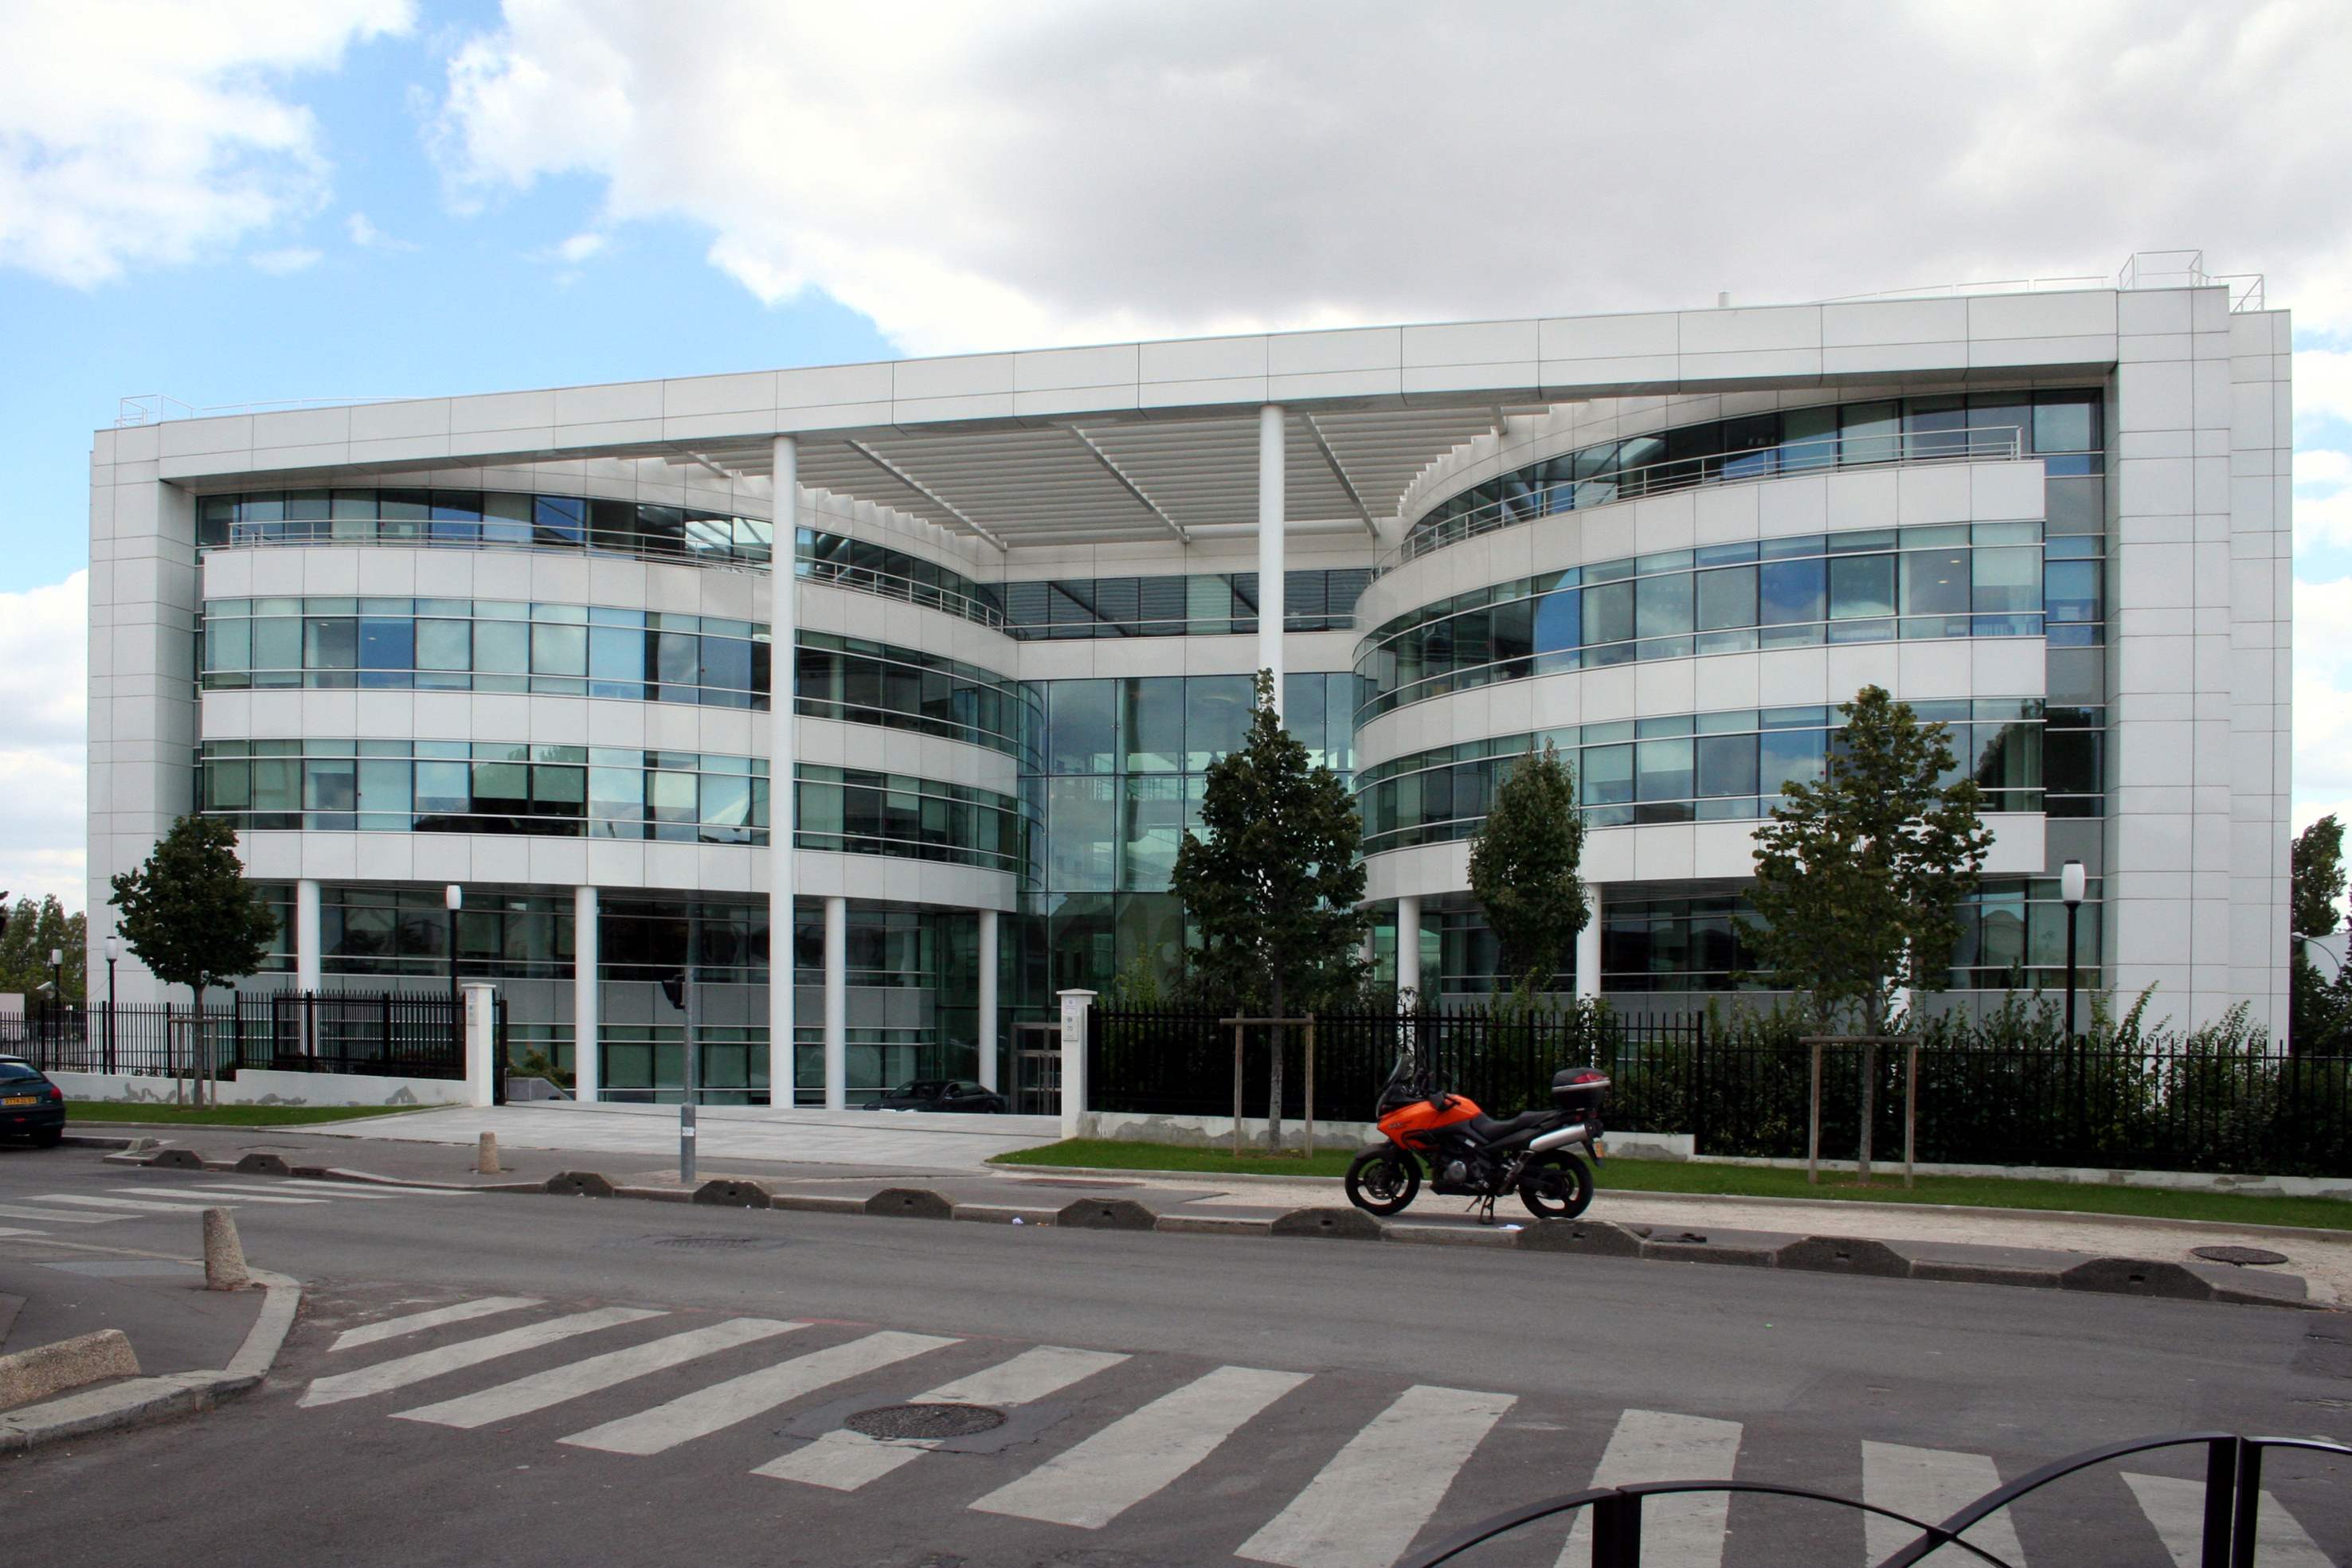 Office building with metal facade